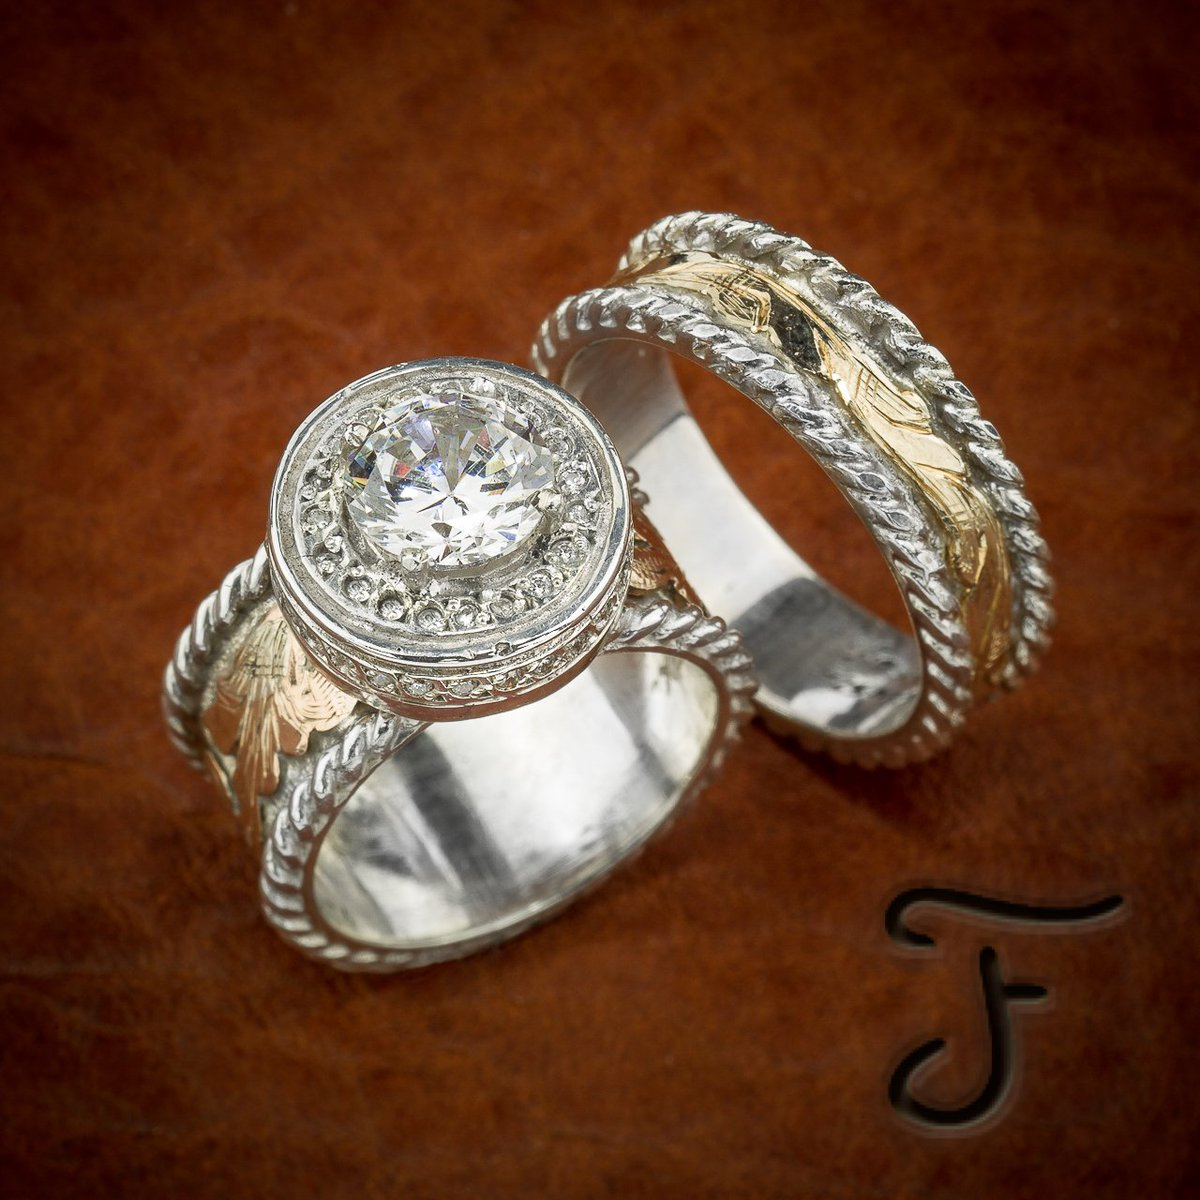 Fanning Jewelry On Twitter Wedding And Anniversary Season Is Upon